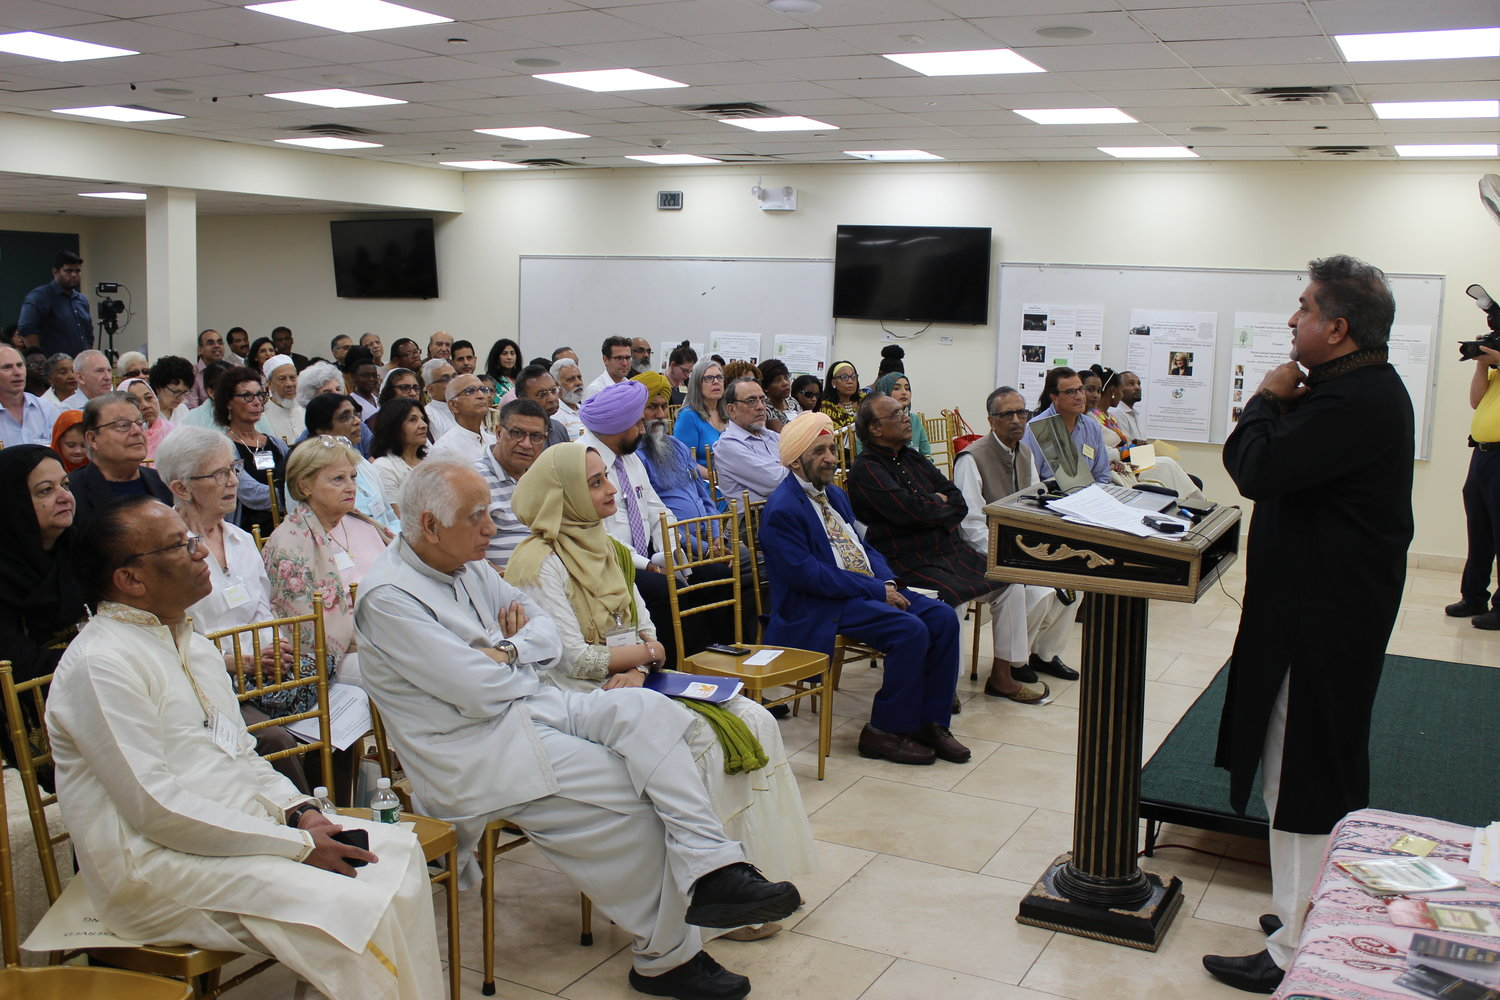 Mohammed Sohail Nabi, a board member of the Islamic Center of Long Island's Interfaith Instutute, explained the history of Mecca, Saudi Arabia, the holiest city in Islam, at the center's interfaith celebration of Eid al-Adha on Sunday.